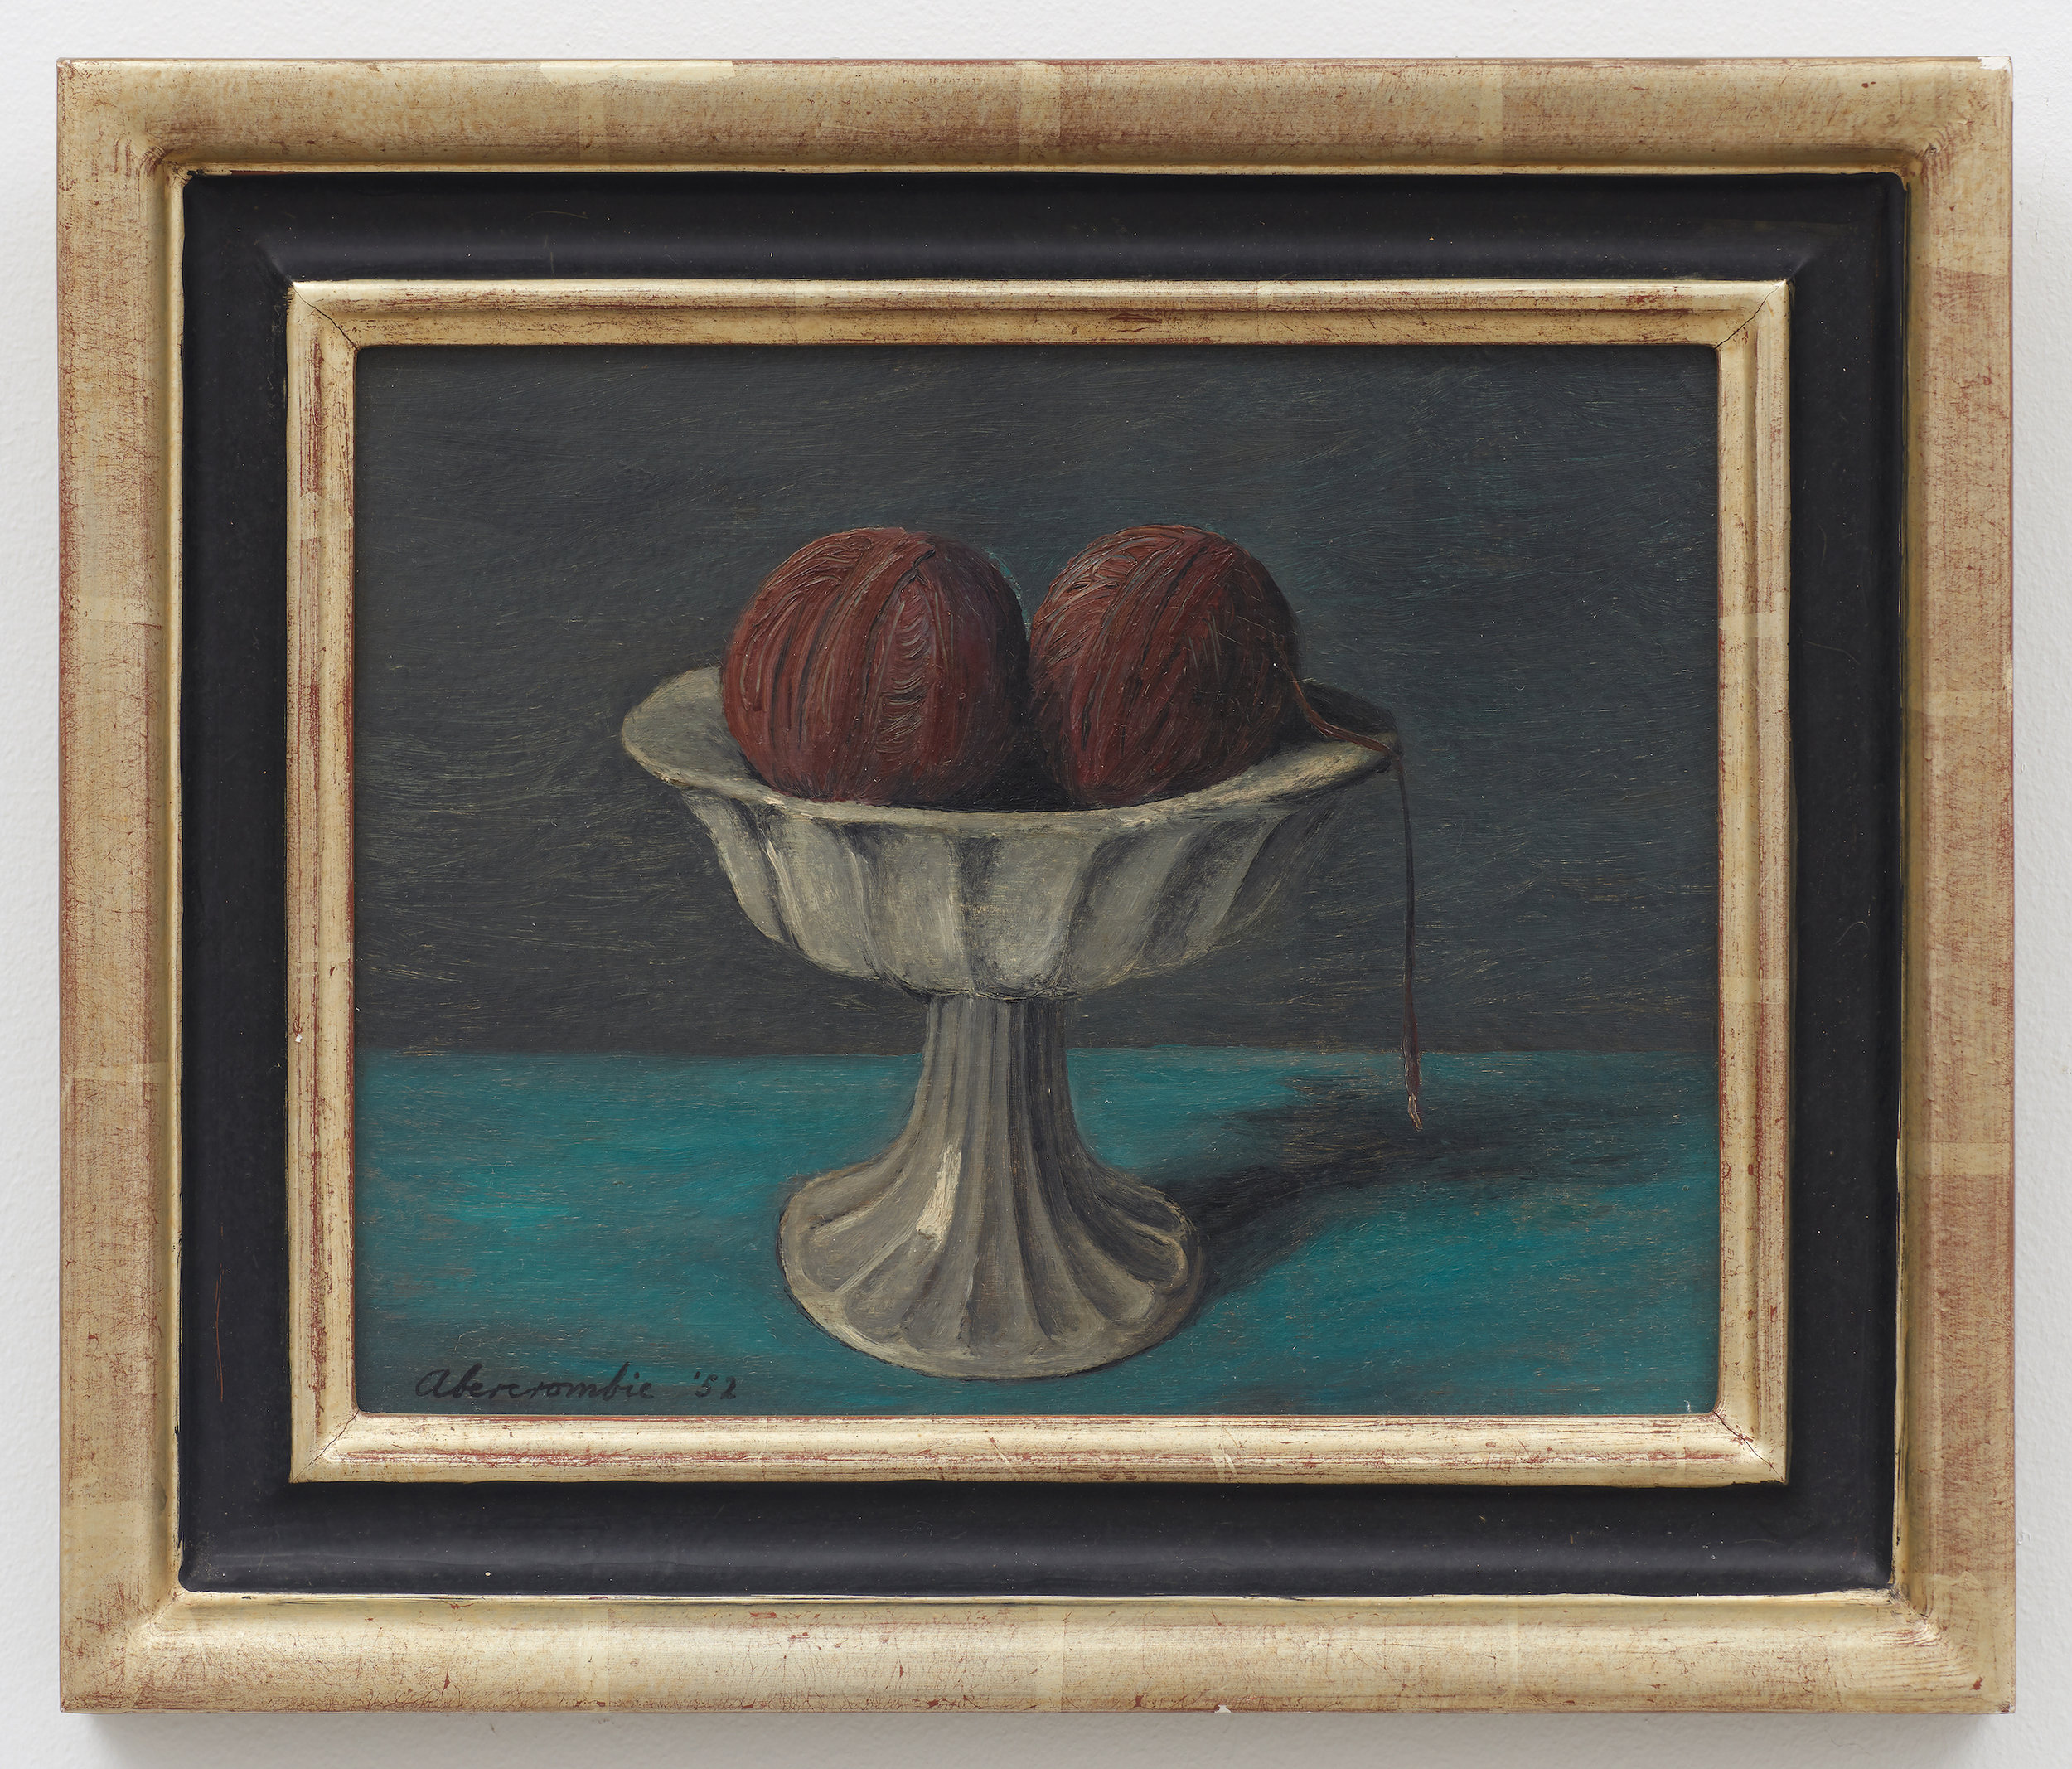 Compote and Purple Yarn,  1952, Oil on board, 8 × 10 inches (unframed); 11 1/2 × 13 1/2 inches (framed)